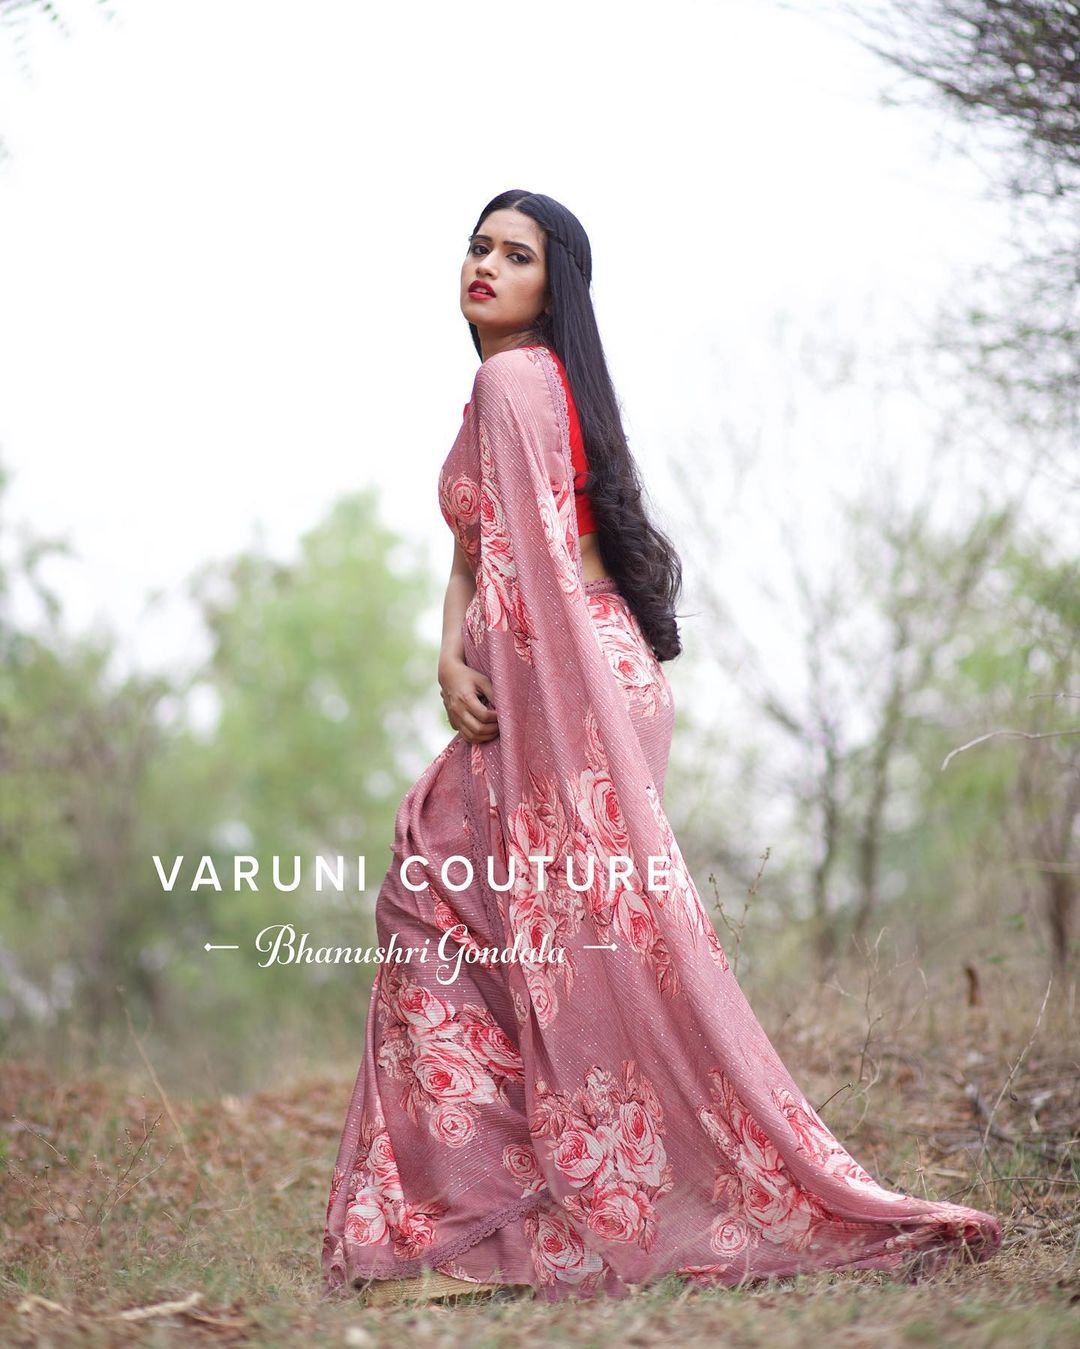 Stunning lavender  color floral saree and red color sleeveless blouse. Price 6999 INR  For sales / orders WhatsApp 9121017226 Email varunicouturehyd@gmail.com 2021-05-09